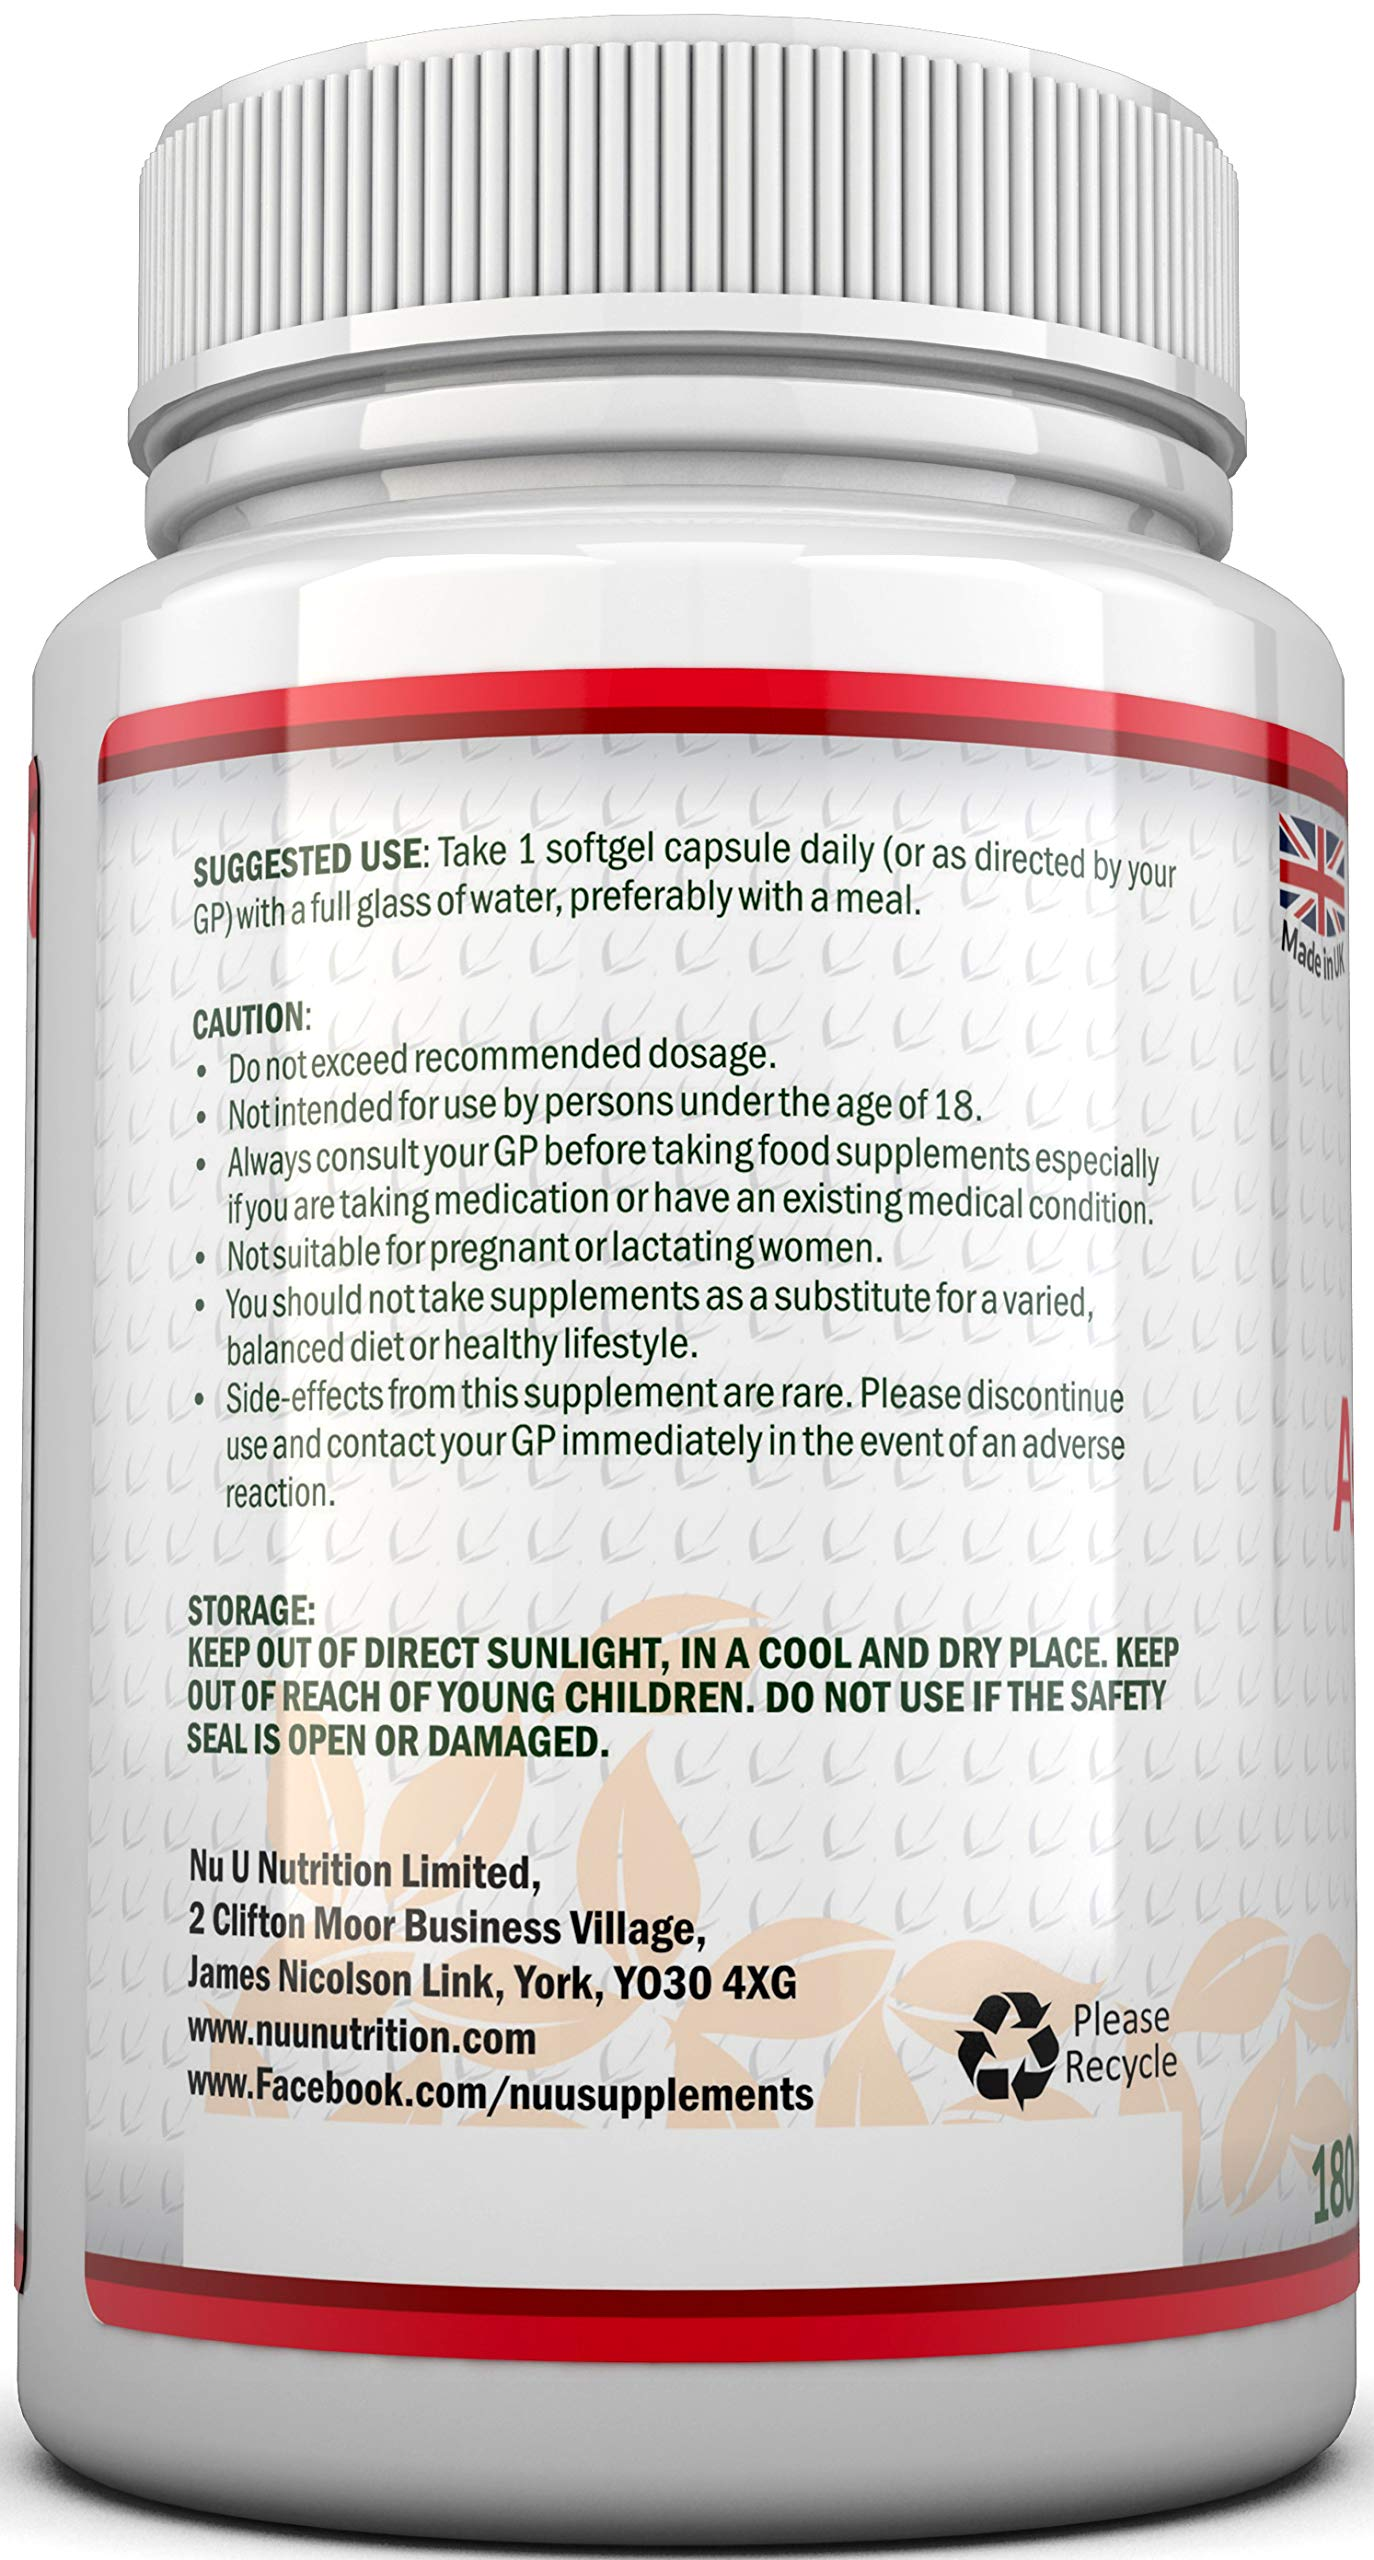 Astaxanthin 5% Oil 12mg   180 Softgels (6 Month Supply)   Astaxanthin from Nu U Nutrition